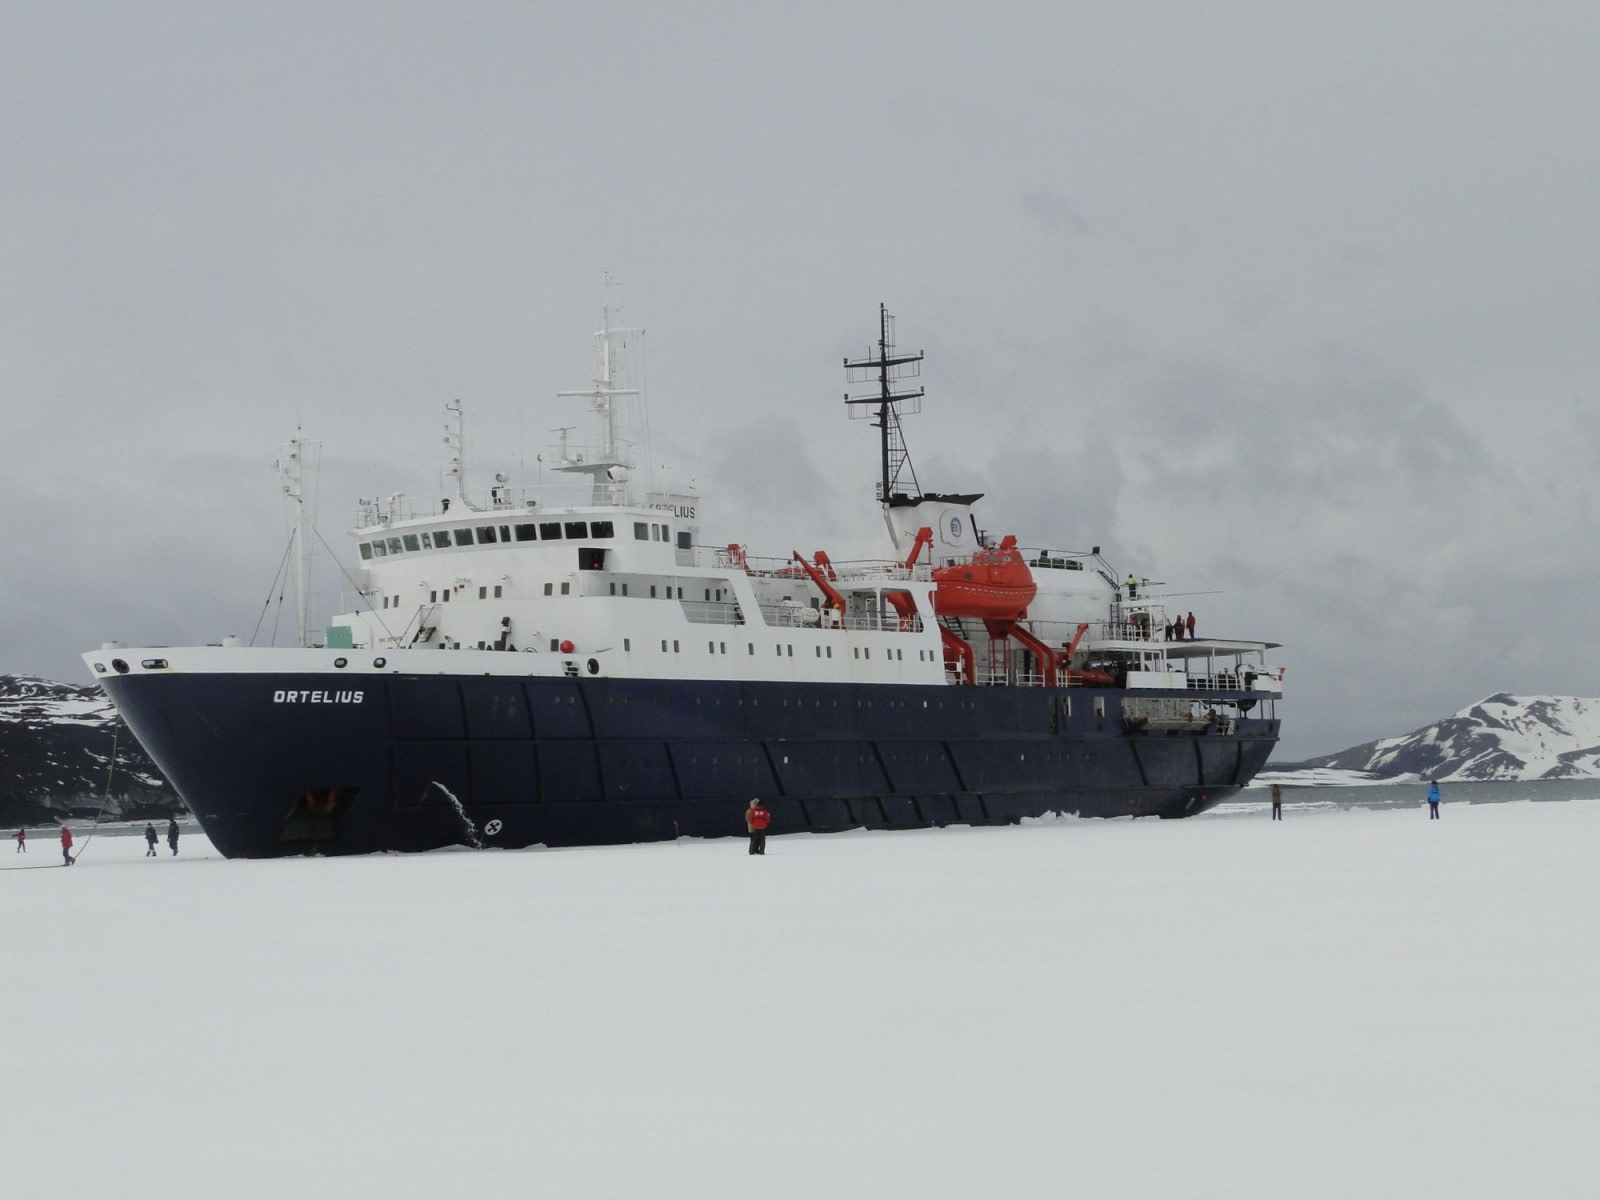 Walking on the pack ice in the Weddell Sea